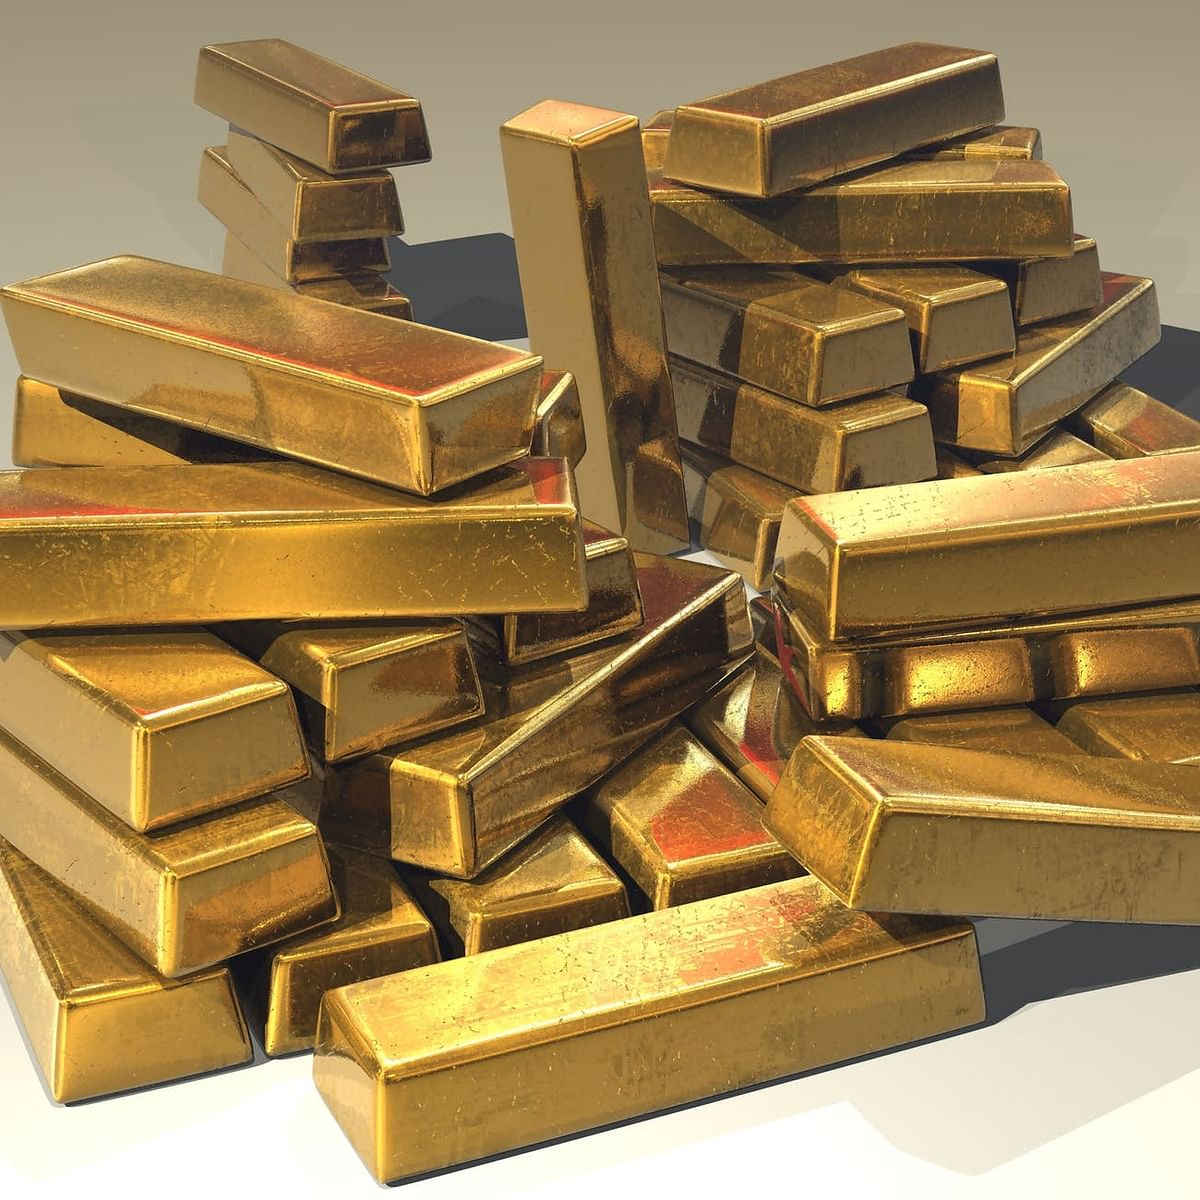 Policy watch: A sightless government isn't even aware where gold is and in what forms